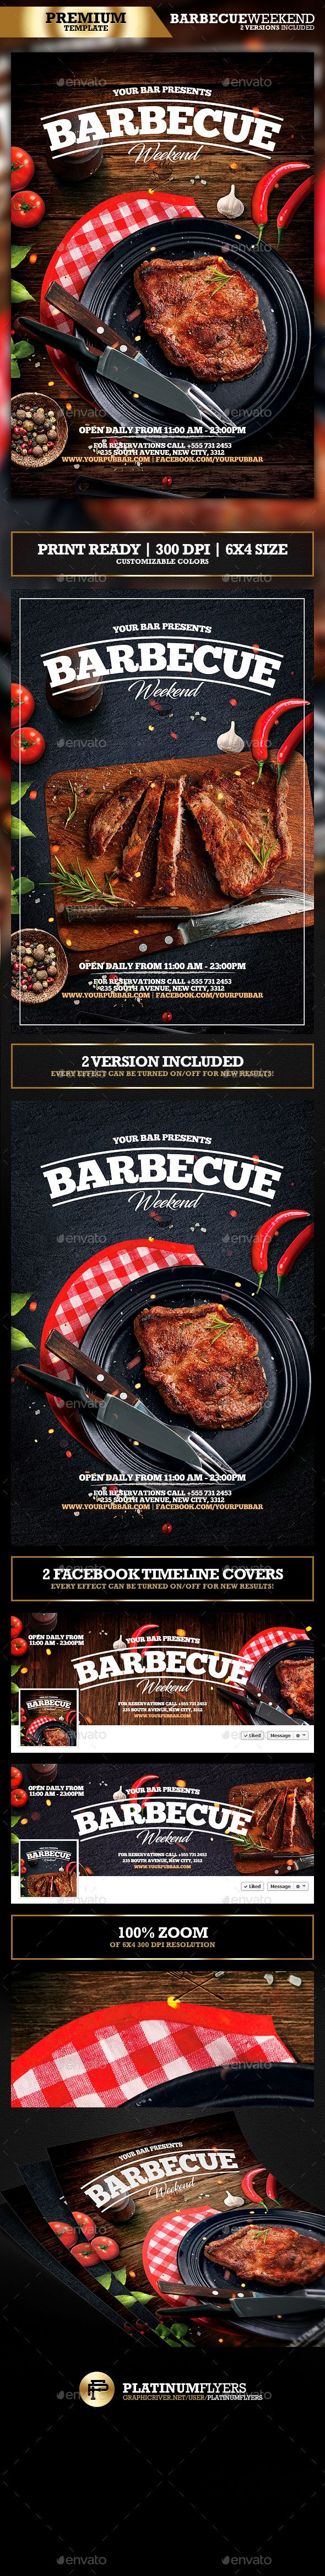 Barbecue BBQ Restaurant Promotion Flyer Más